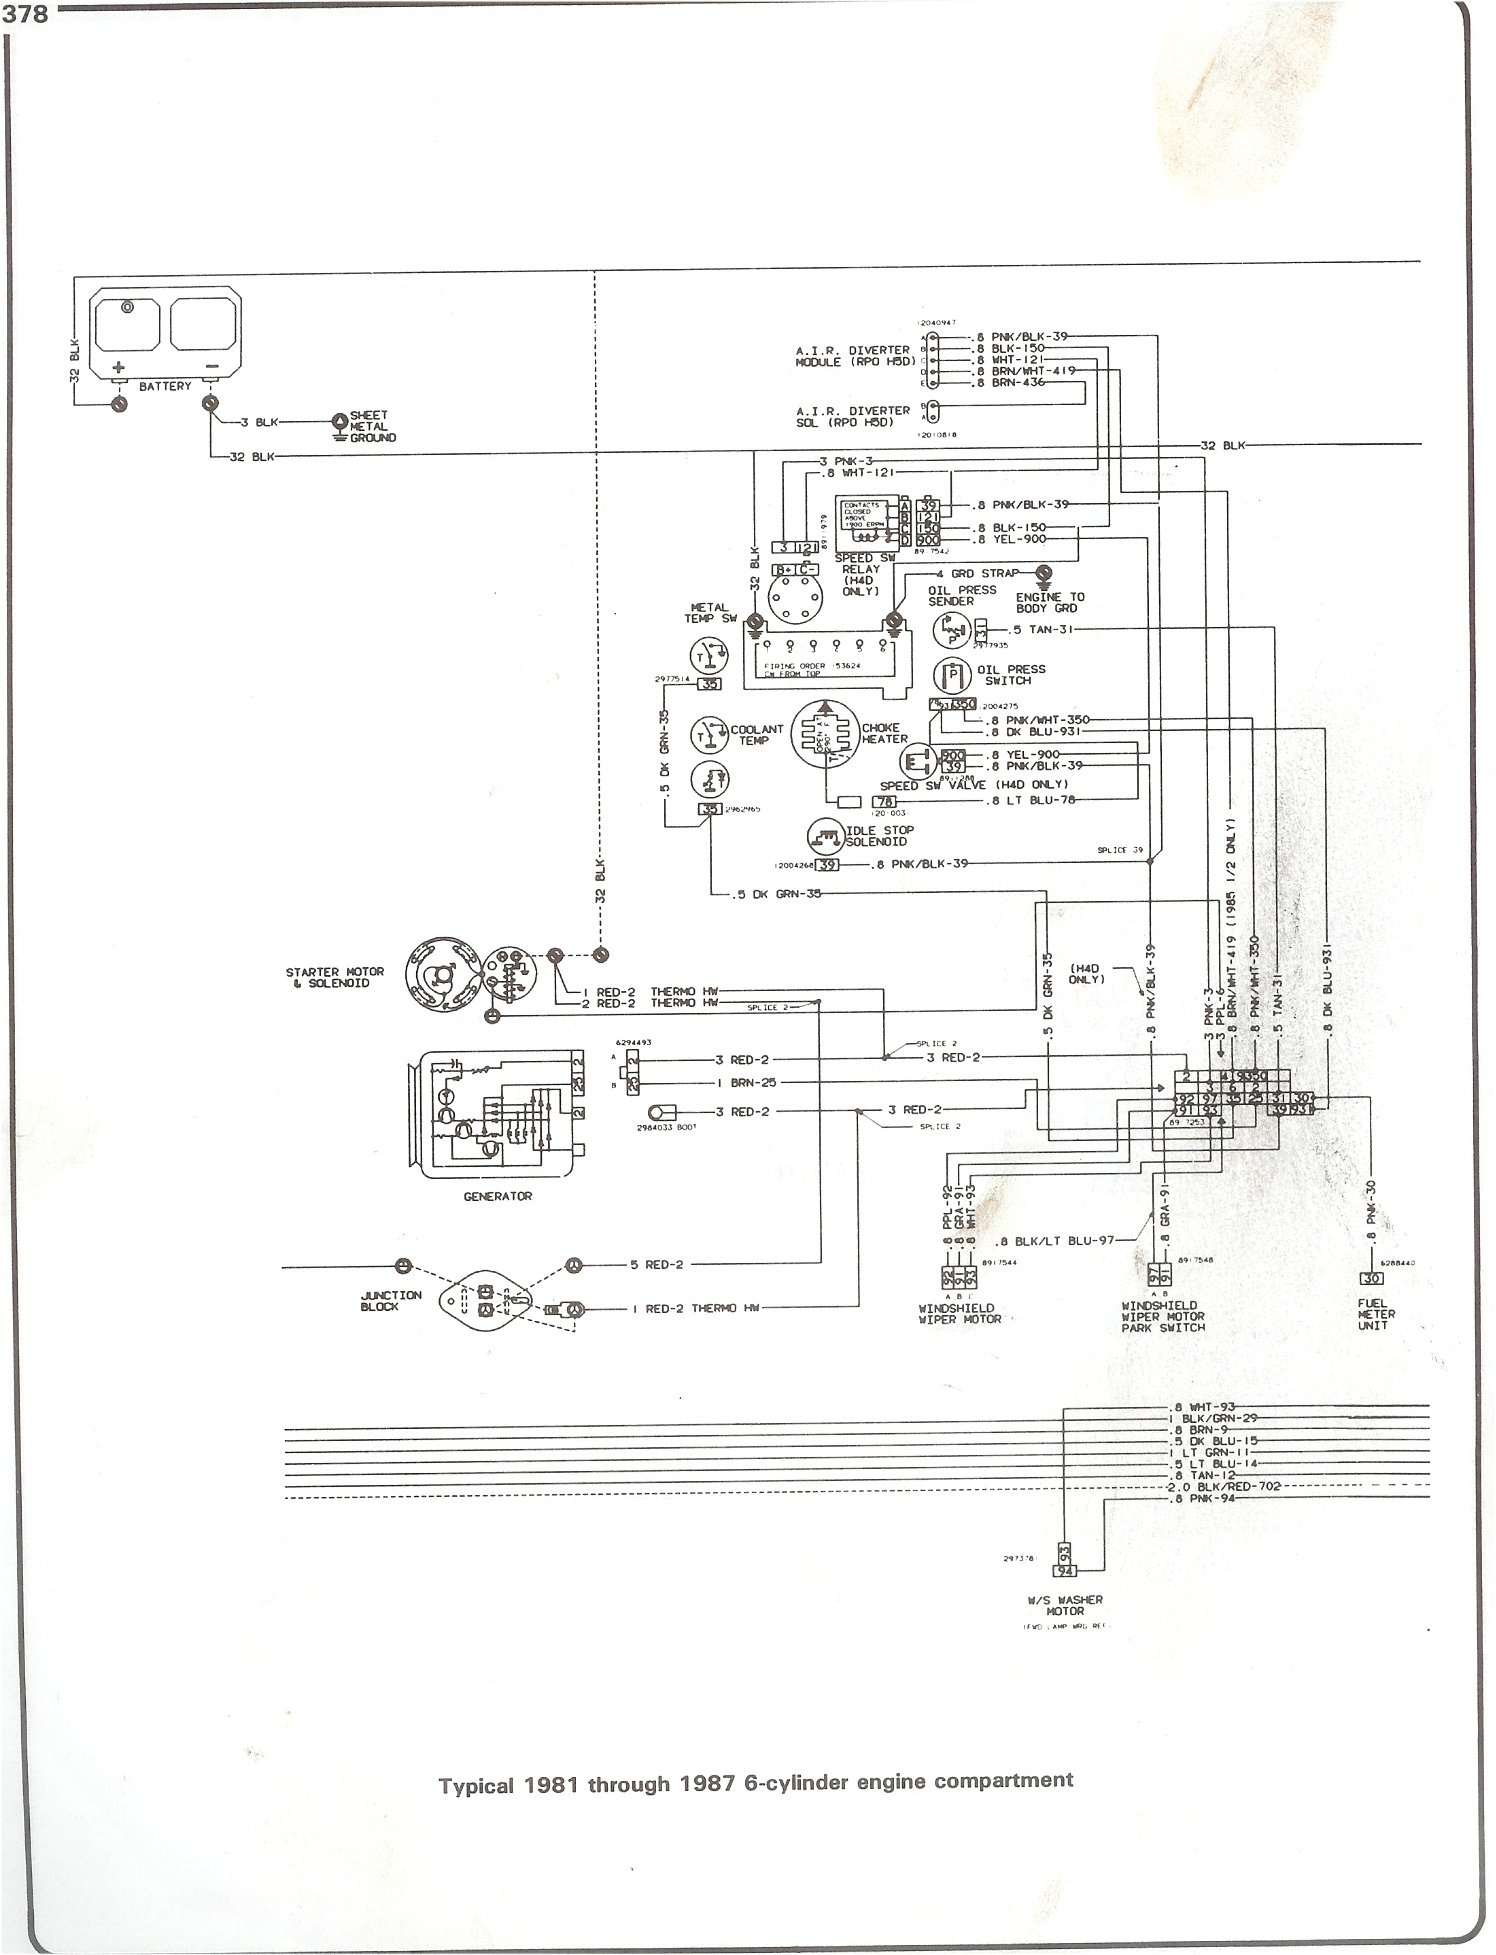 Chevrolet Engine Diagram Electrical Diagrams Forum Gmc 1987 Chevy Wiring U2022 Rh Jimmellon Co Uk Gm